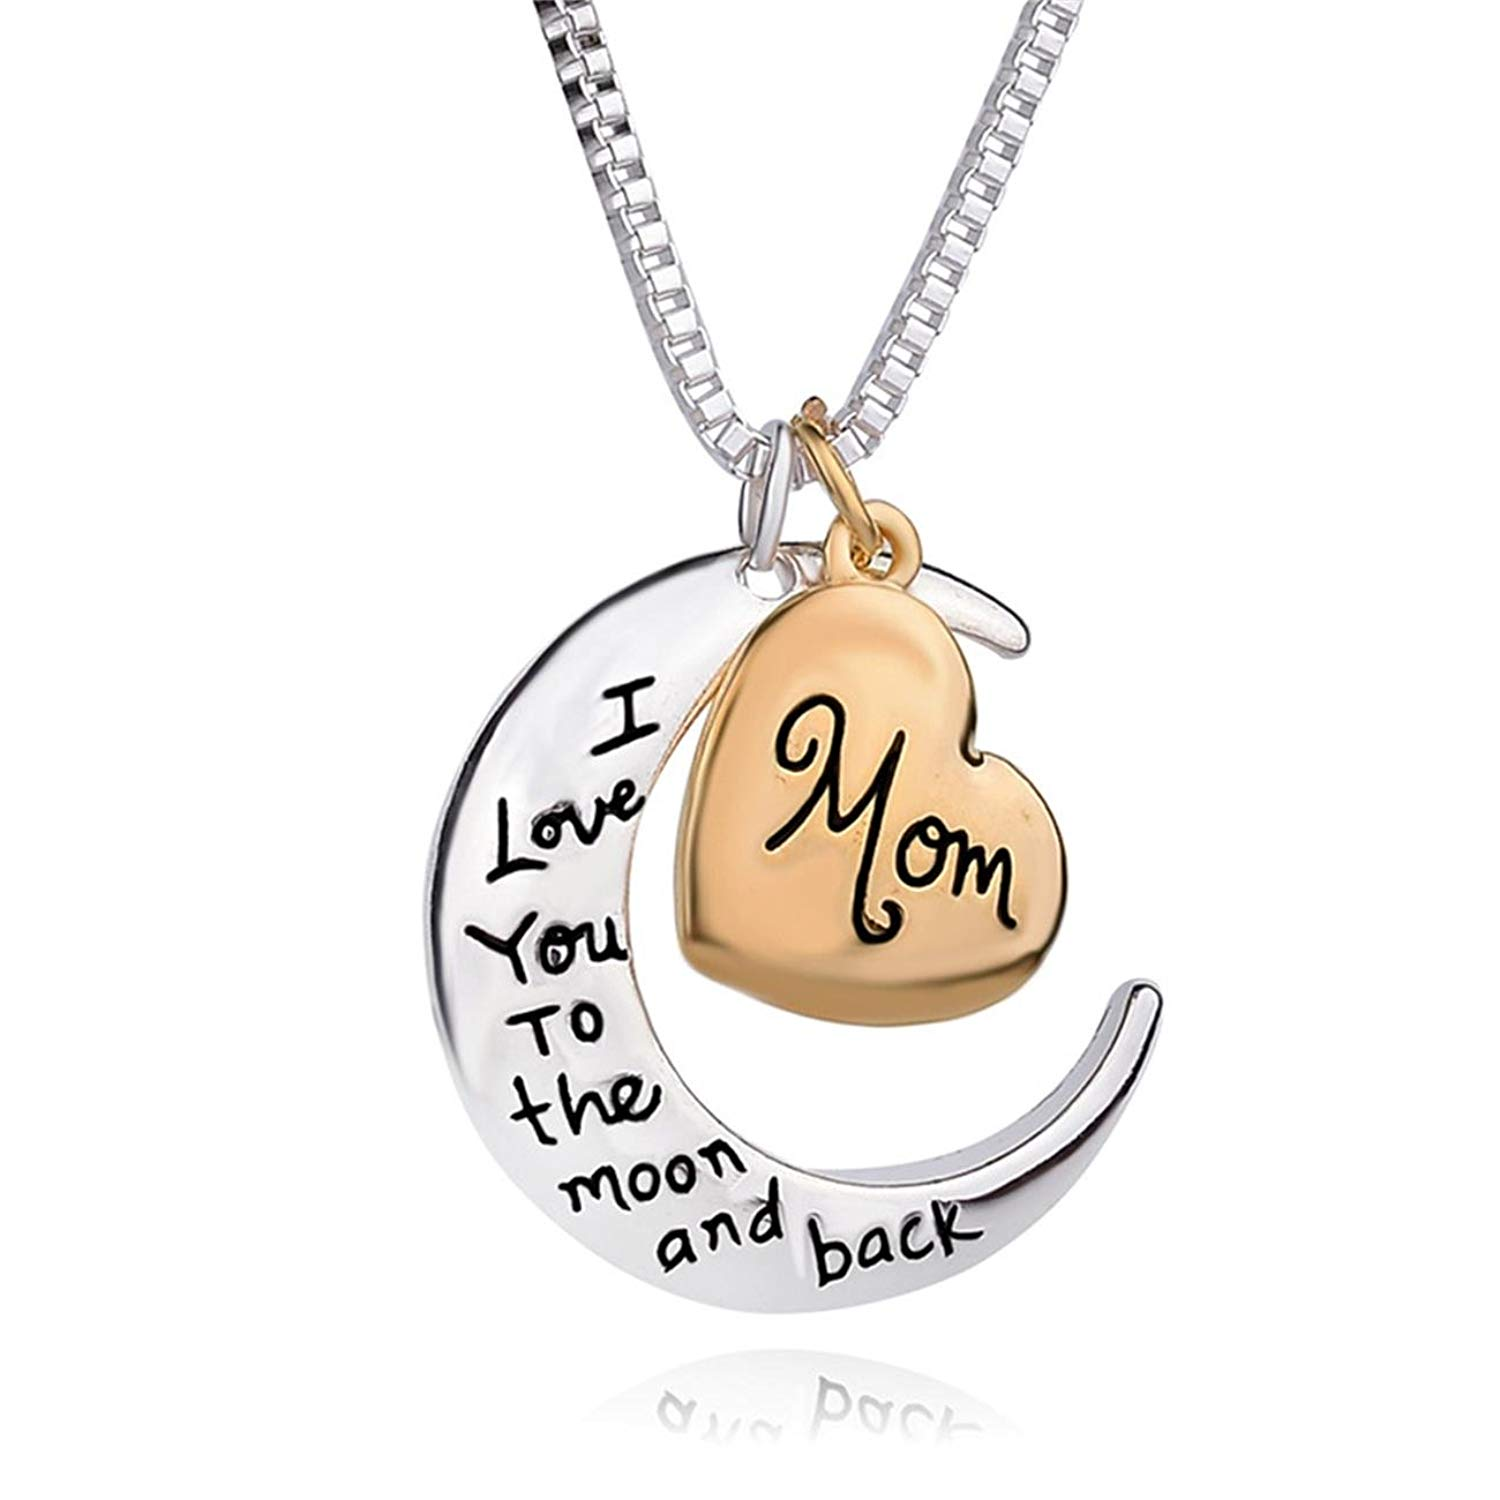 c26a81664 Get Quotations · QUEENA Mother's Day Gift for Mom Heart Moon Shape Cubic  Pendent Necklace Stainless Steel Necklace Chain